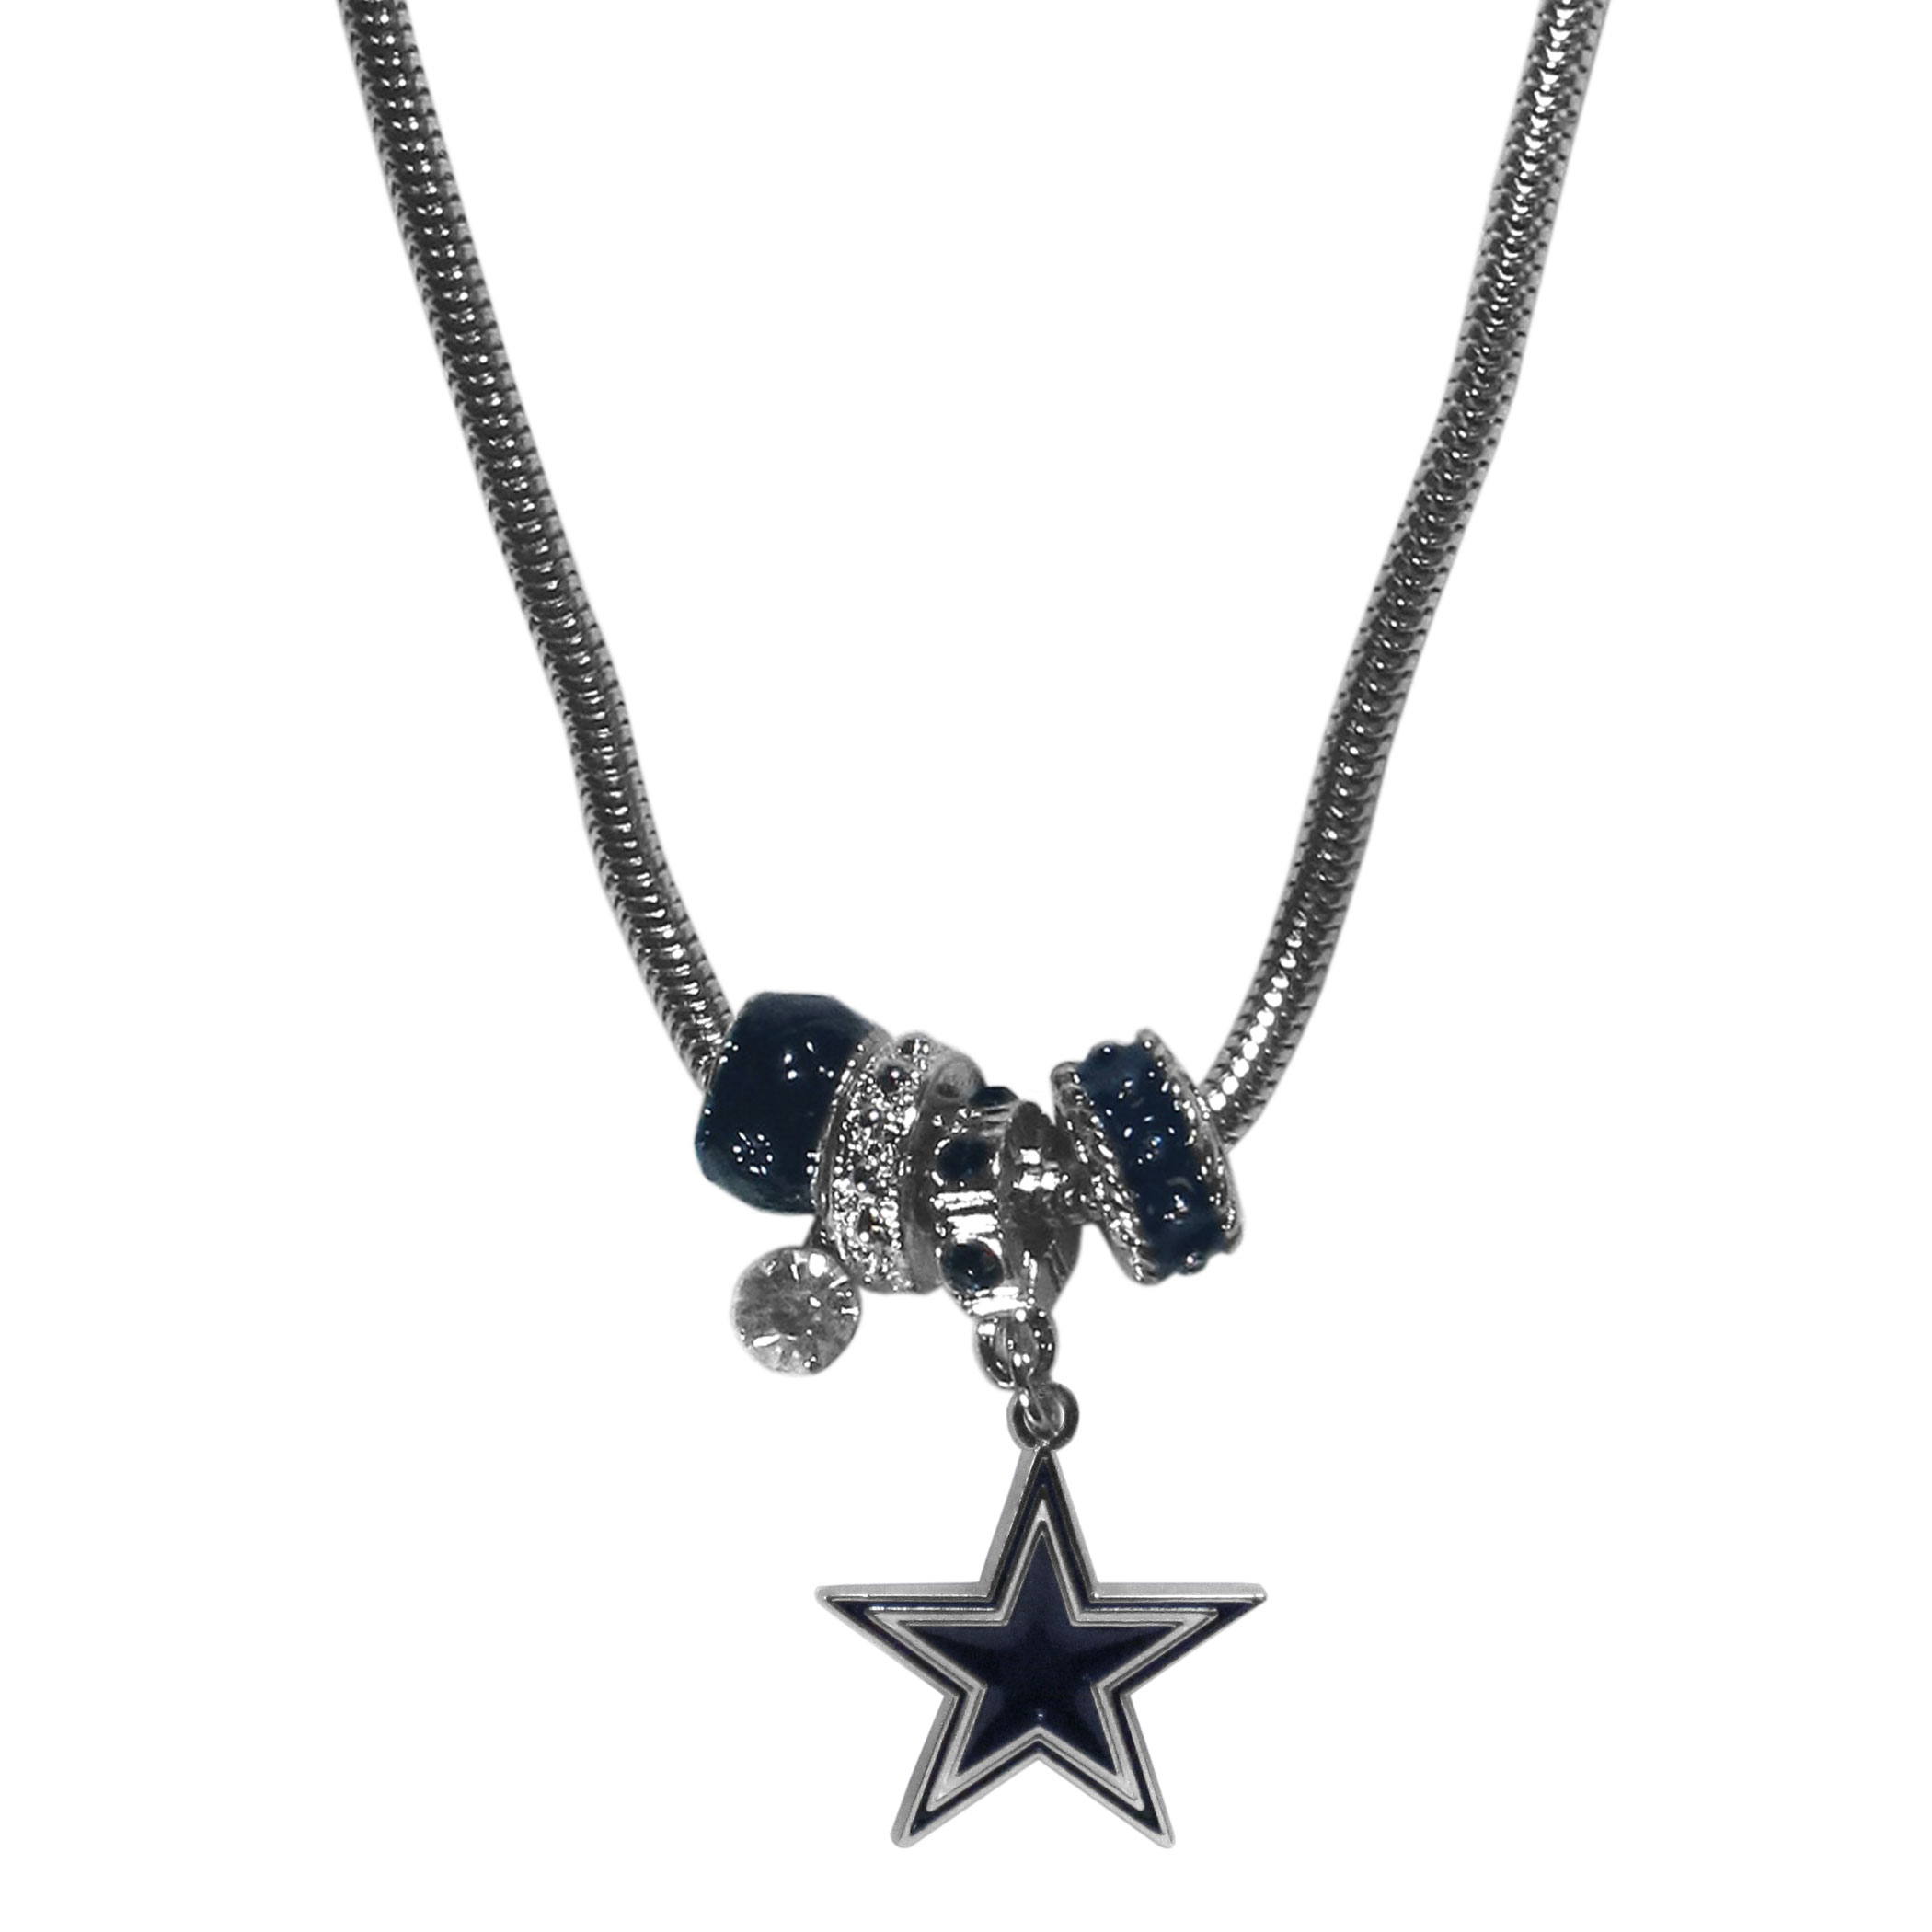 Dallas Cowboys Euro Bead Necklace - We have combined the wildly popular Euro style beads with your favorite team to create our Dallas Cowboys bead necklace. The 18 inch snake chain features 4 Euro beads with enameled team colors and rhinestone accents with a high polish, nickel free charm and rhinestone charm. Perfect way to show off your team pride.